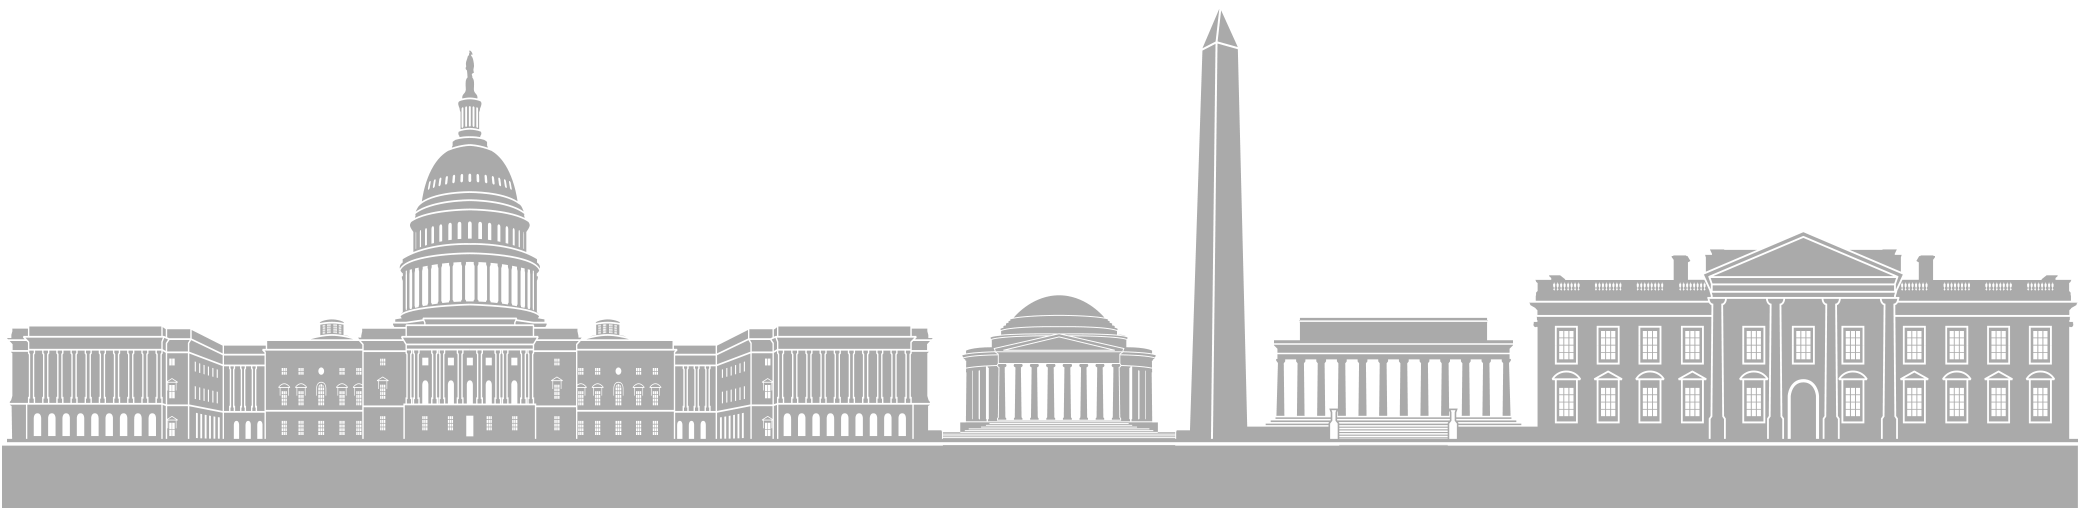 Png Washington Dc - Ppp Solutions For A Complex World, Transparent background PNG HD thumbnail